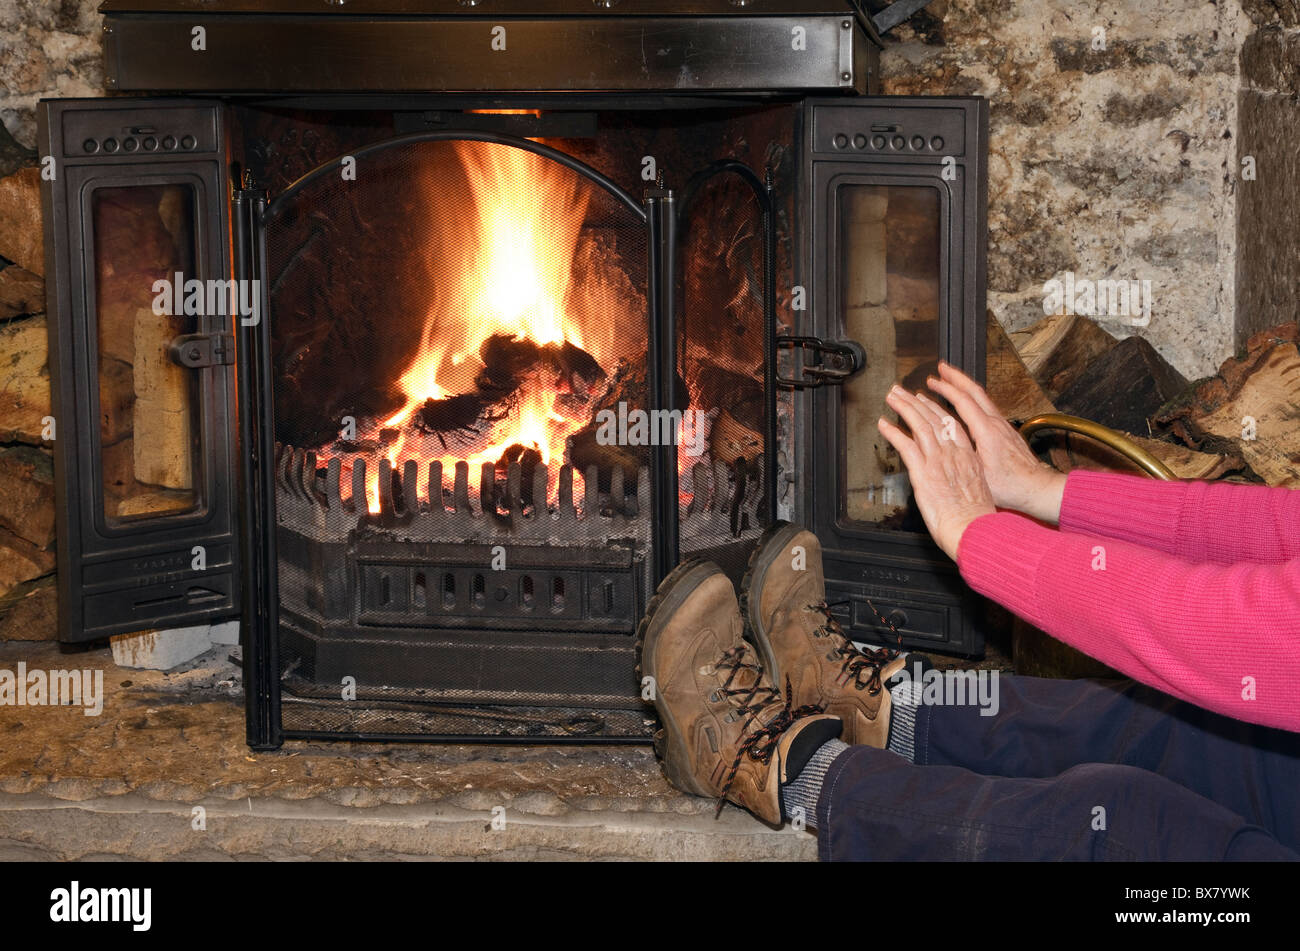 England, UK. Person wearing boots warming cold hands and feet sat in front of an open log fire at home - Stock Image